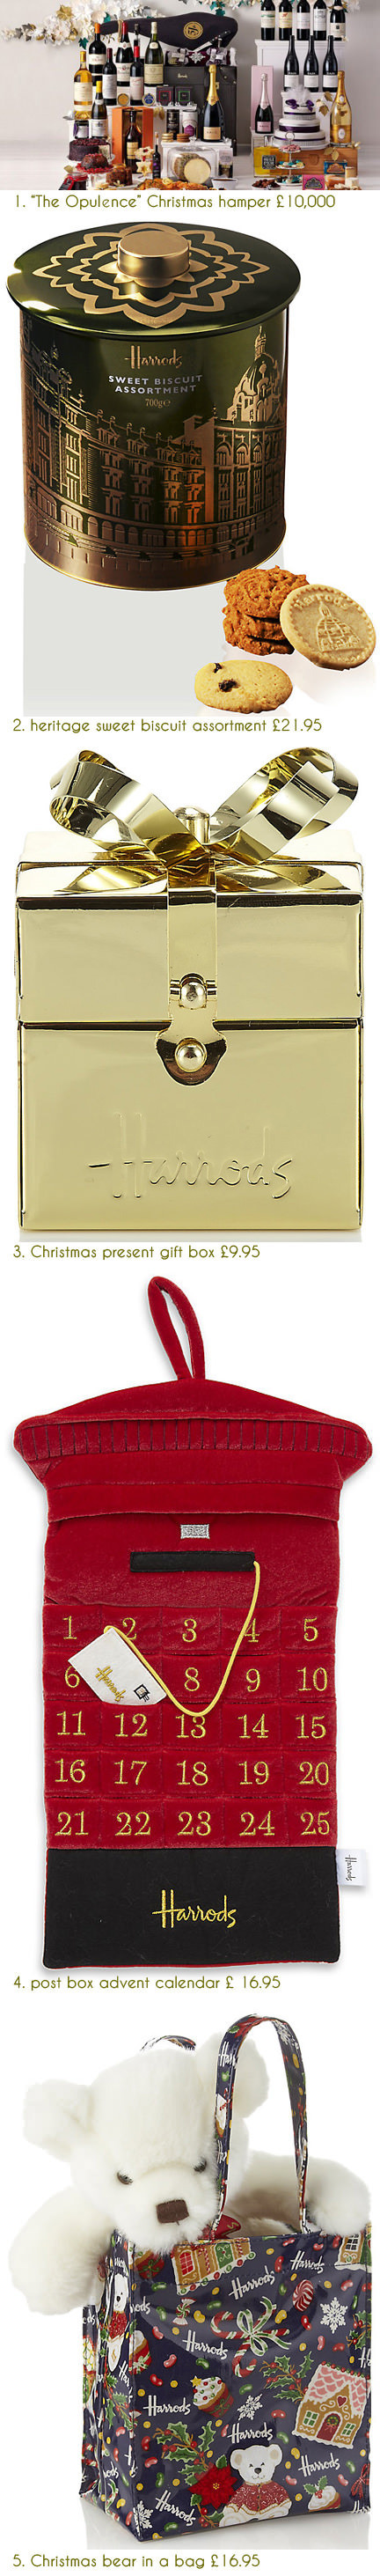 selection of festive Christmas items available at Harrods